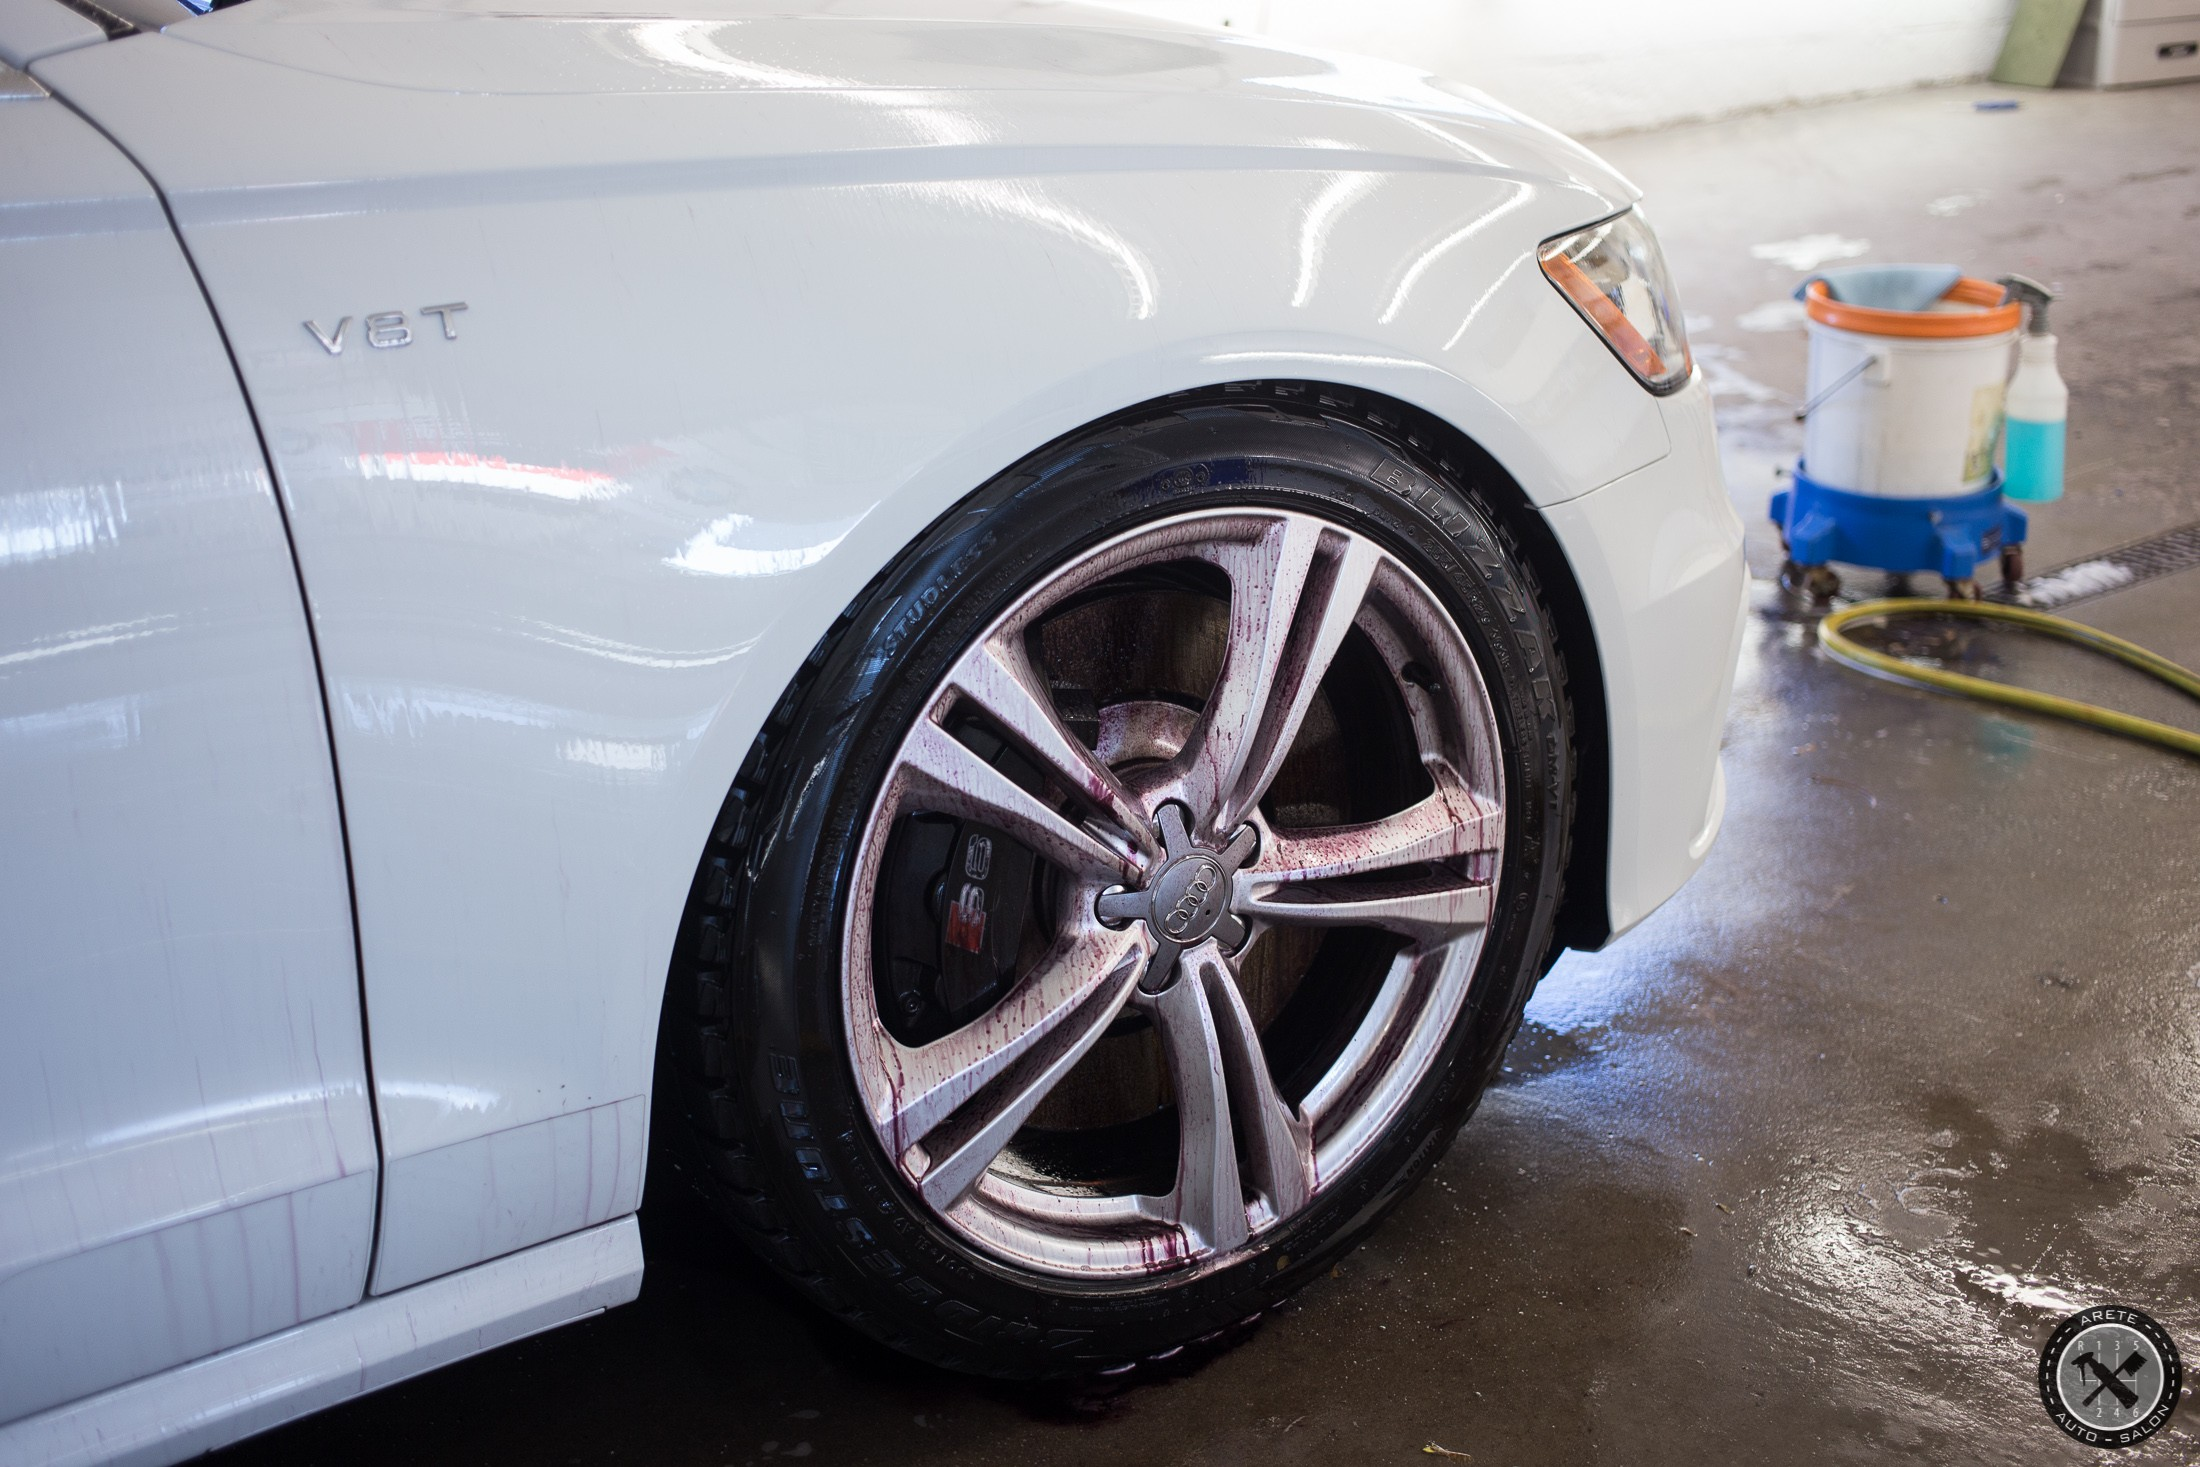 Decontaminating the wheels in preparation for coating.